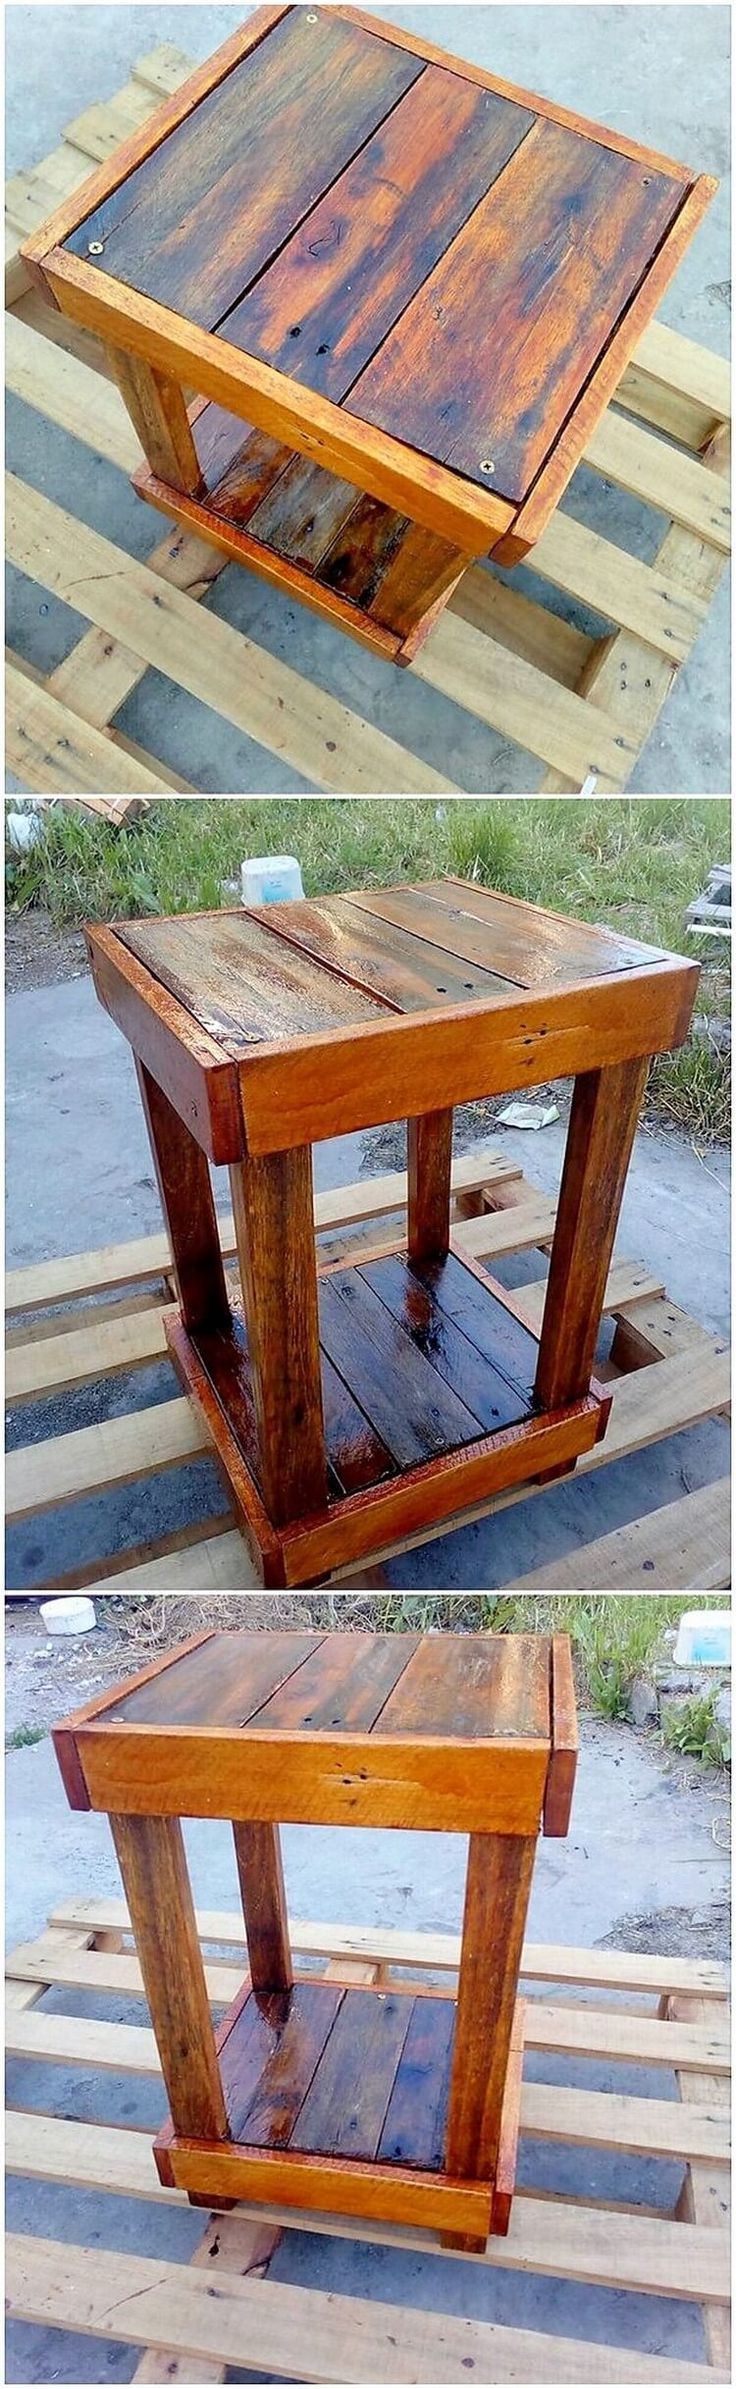 Bring about the innovative use of the wood pallet in the ideal creation of the wood pallet end table structural effect over inside it. Standing on the positioning of 4 legs support system, it is somehow looking so modish and much finished with the attractive strokes of the artwork.